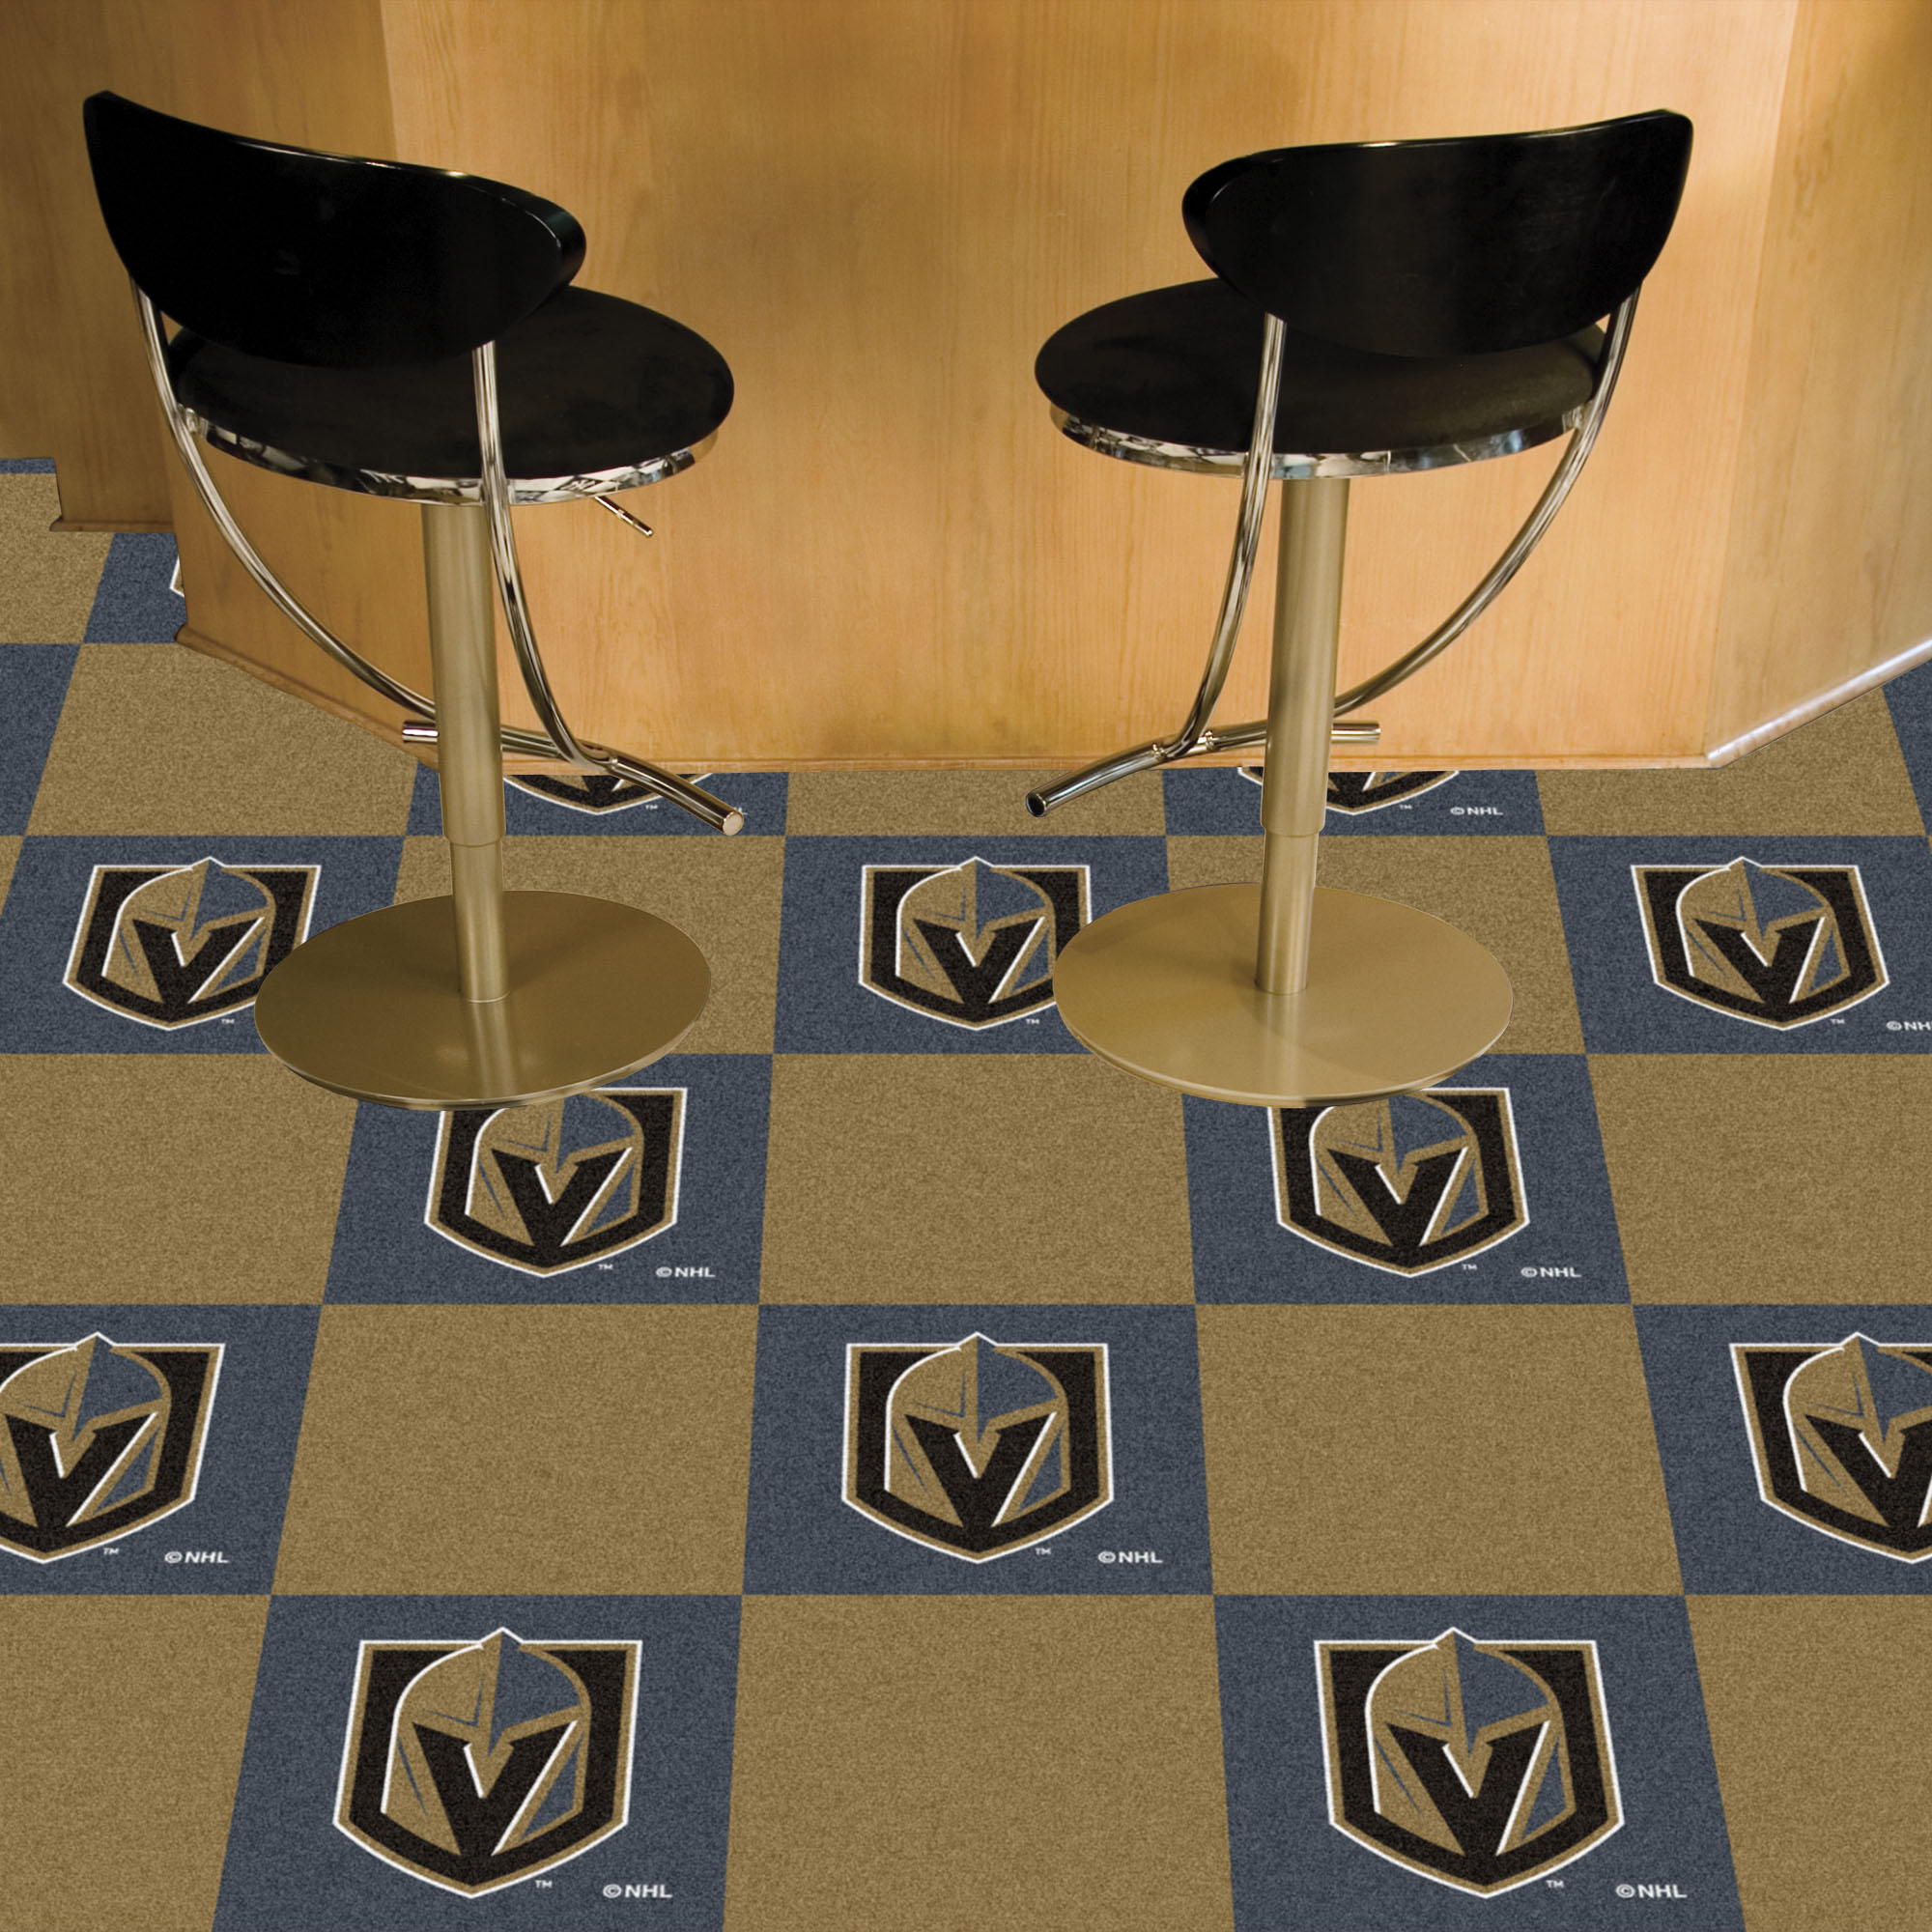 Vegas Golden Knights Carpet Tiles 18x18 in.